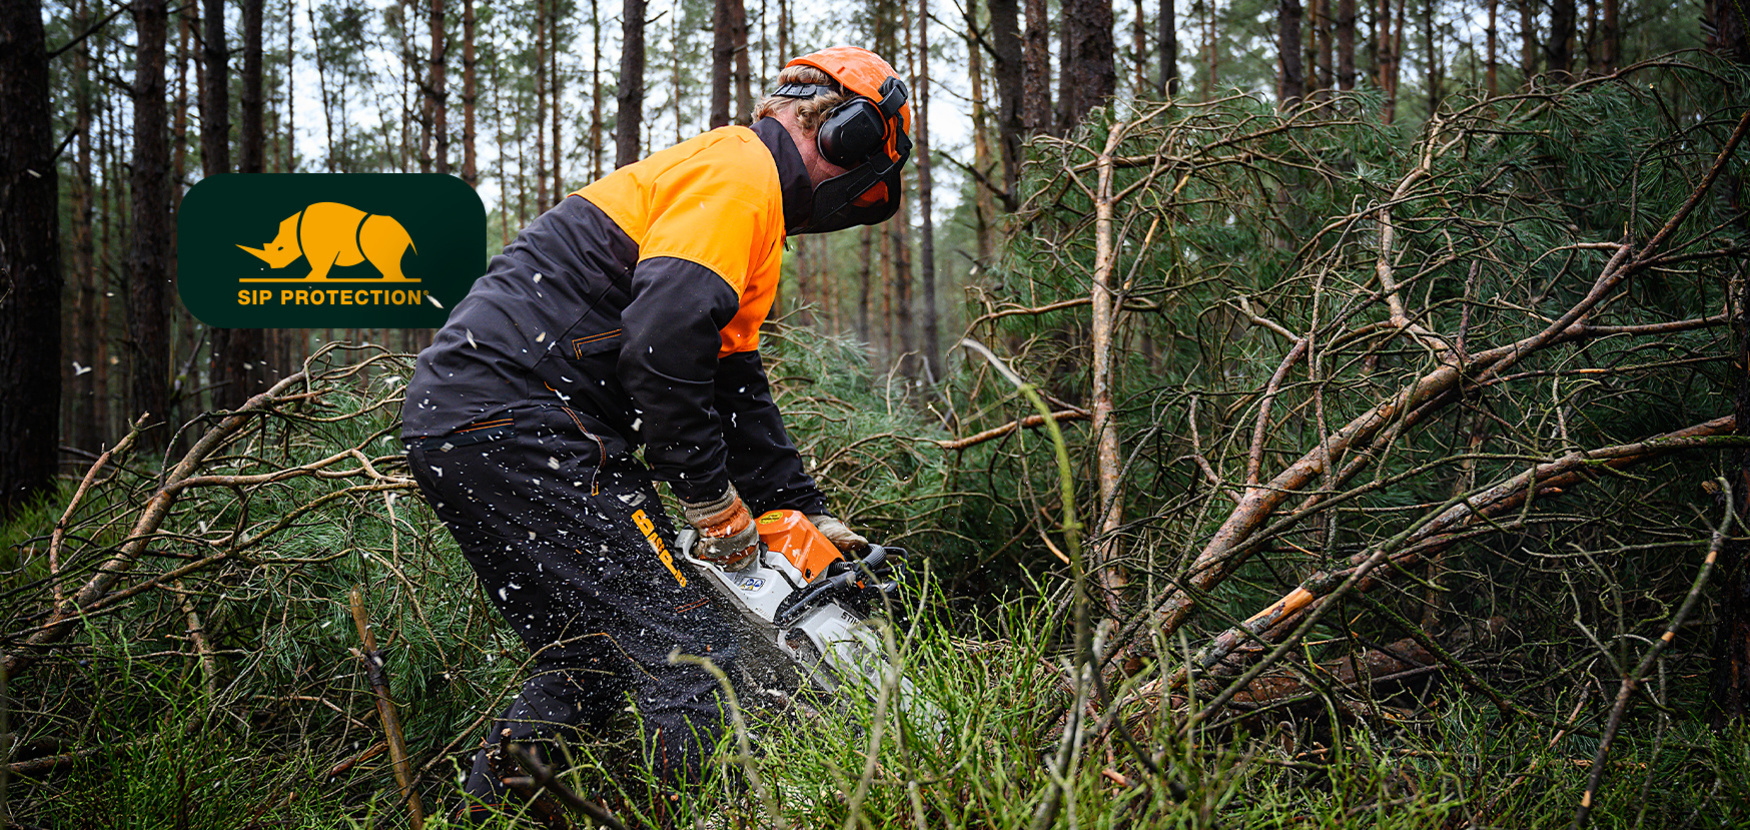 Shop SIP PROTECTION - Protective clothing for users of chainsaws#Discover the new BasePro collection#R